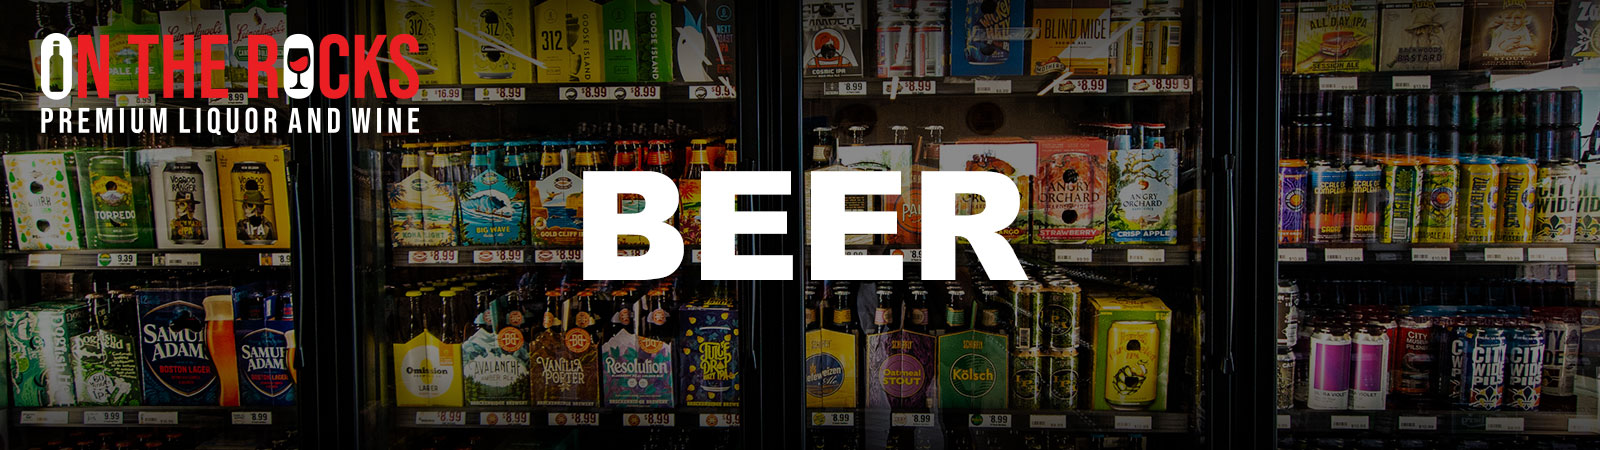 On-The-Rocks-Premium-Liquor-and-Beer-St.-Charles-Beer-Page-Banner